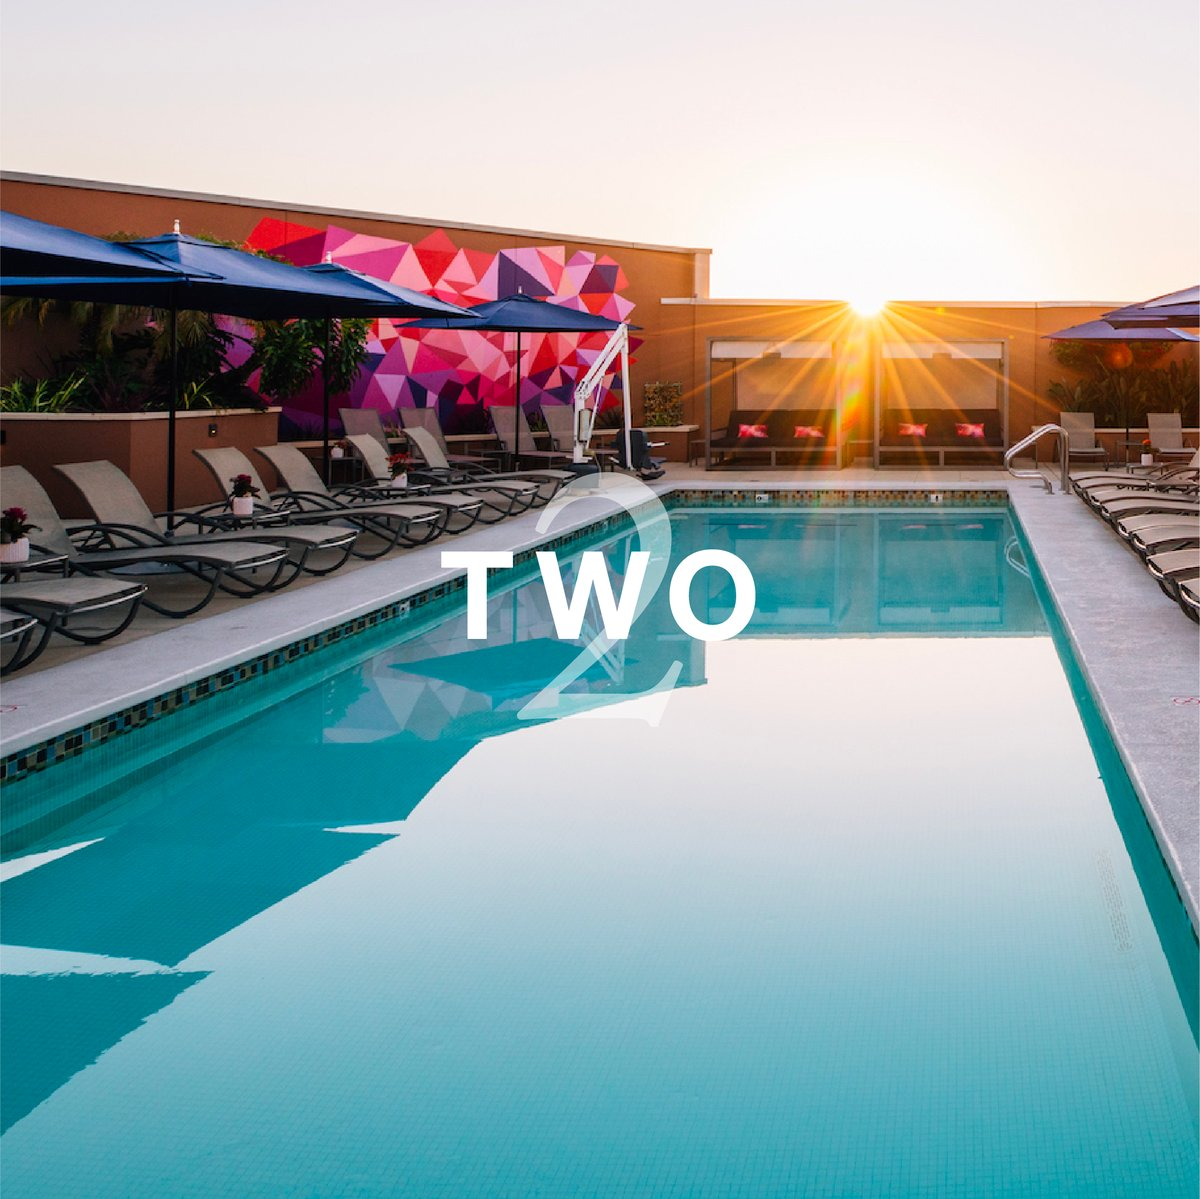 In just two days, this can be your place to soak up the sun. We are so excited to welcome you back to our pool, complete with an outdoor fitness cabana that includes water-powered cardio equipment, Peloton, TRX resistance, free weights, and more. https://t.co/ZJf0cAY65N